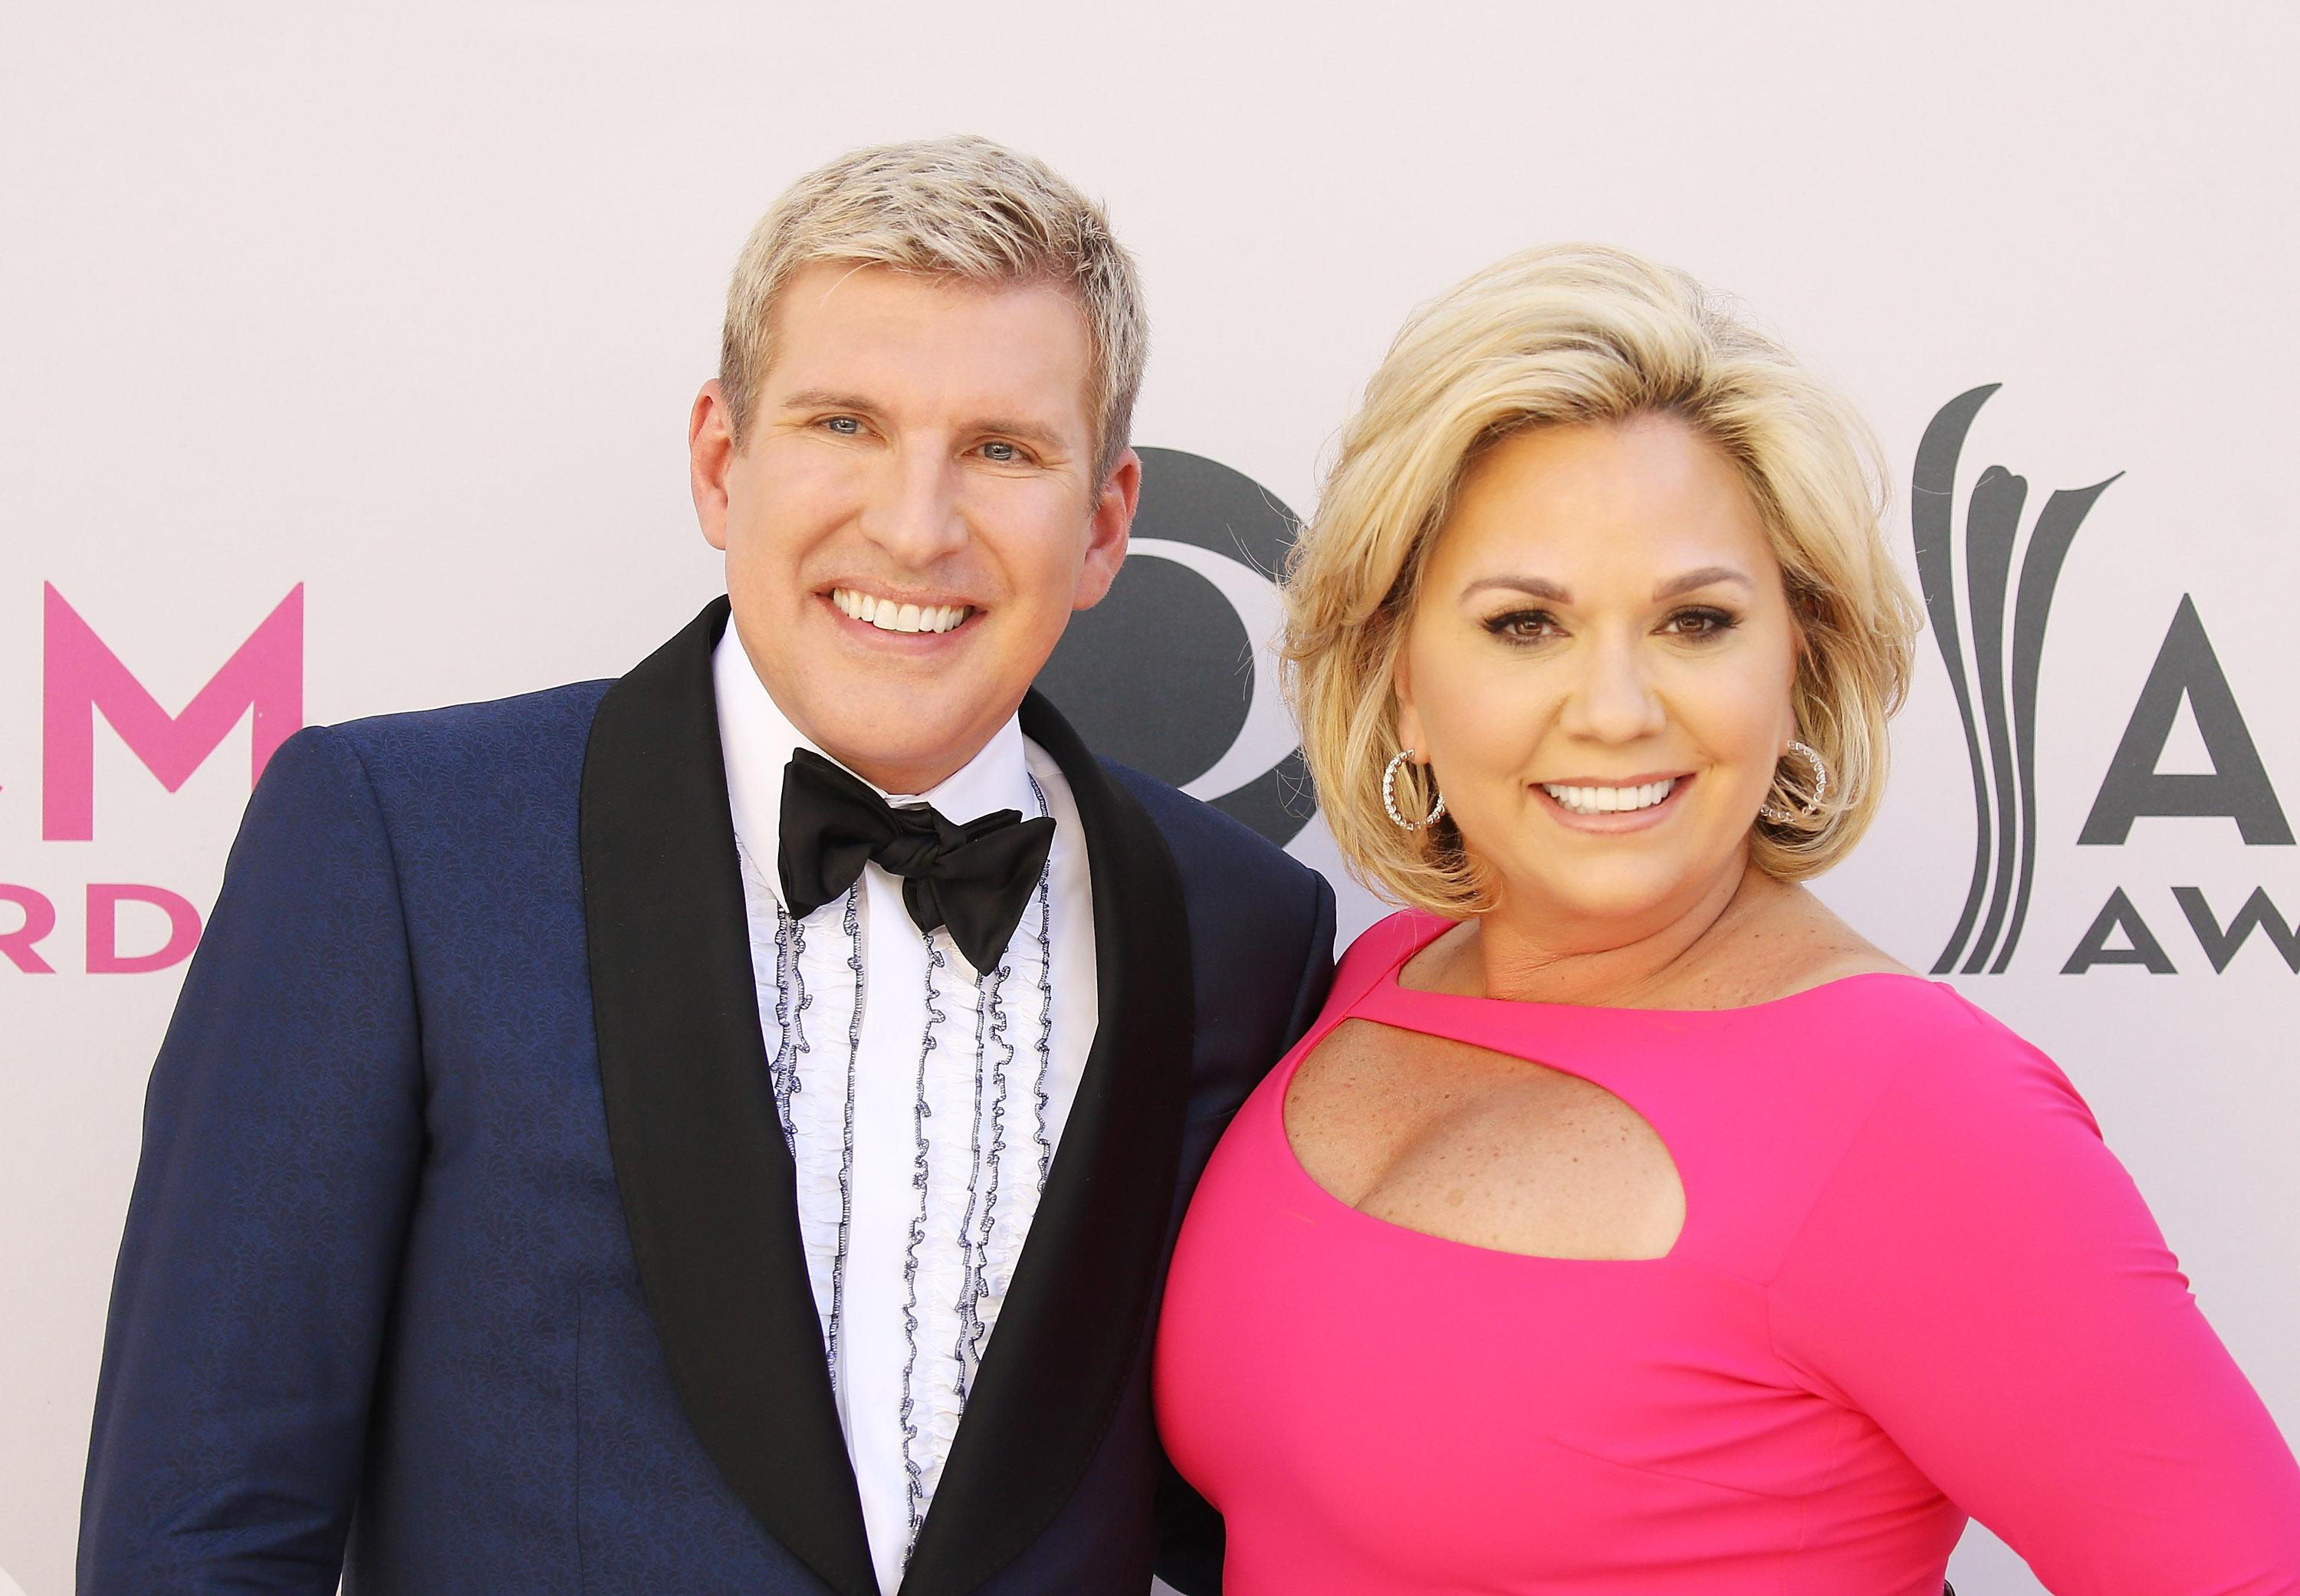 'Chrisley Knows Best' stars plead not guilty to financial crimes, released on $100,000 bond